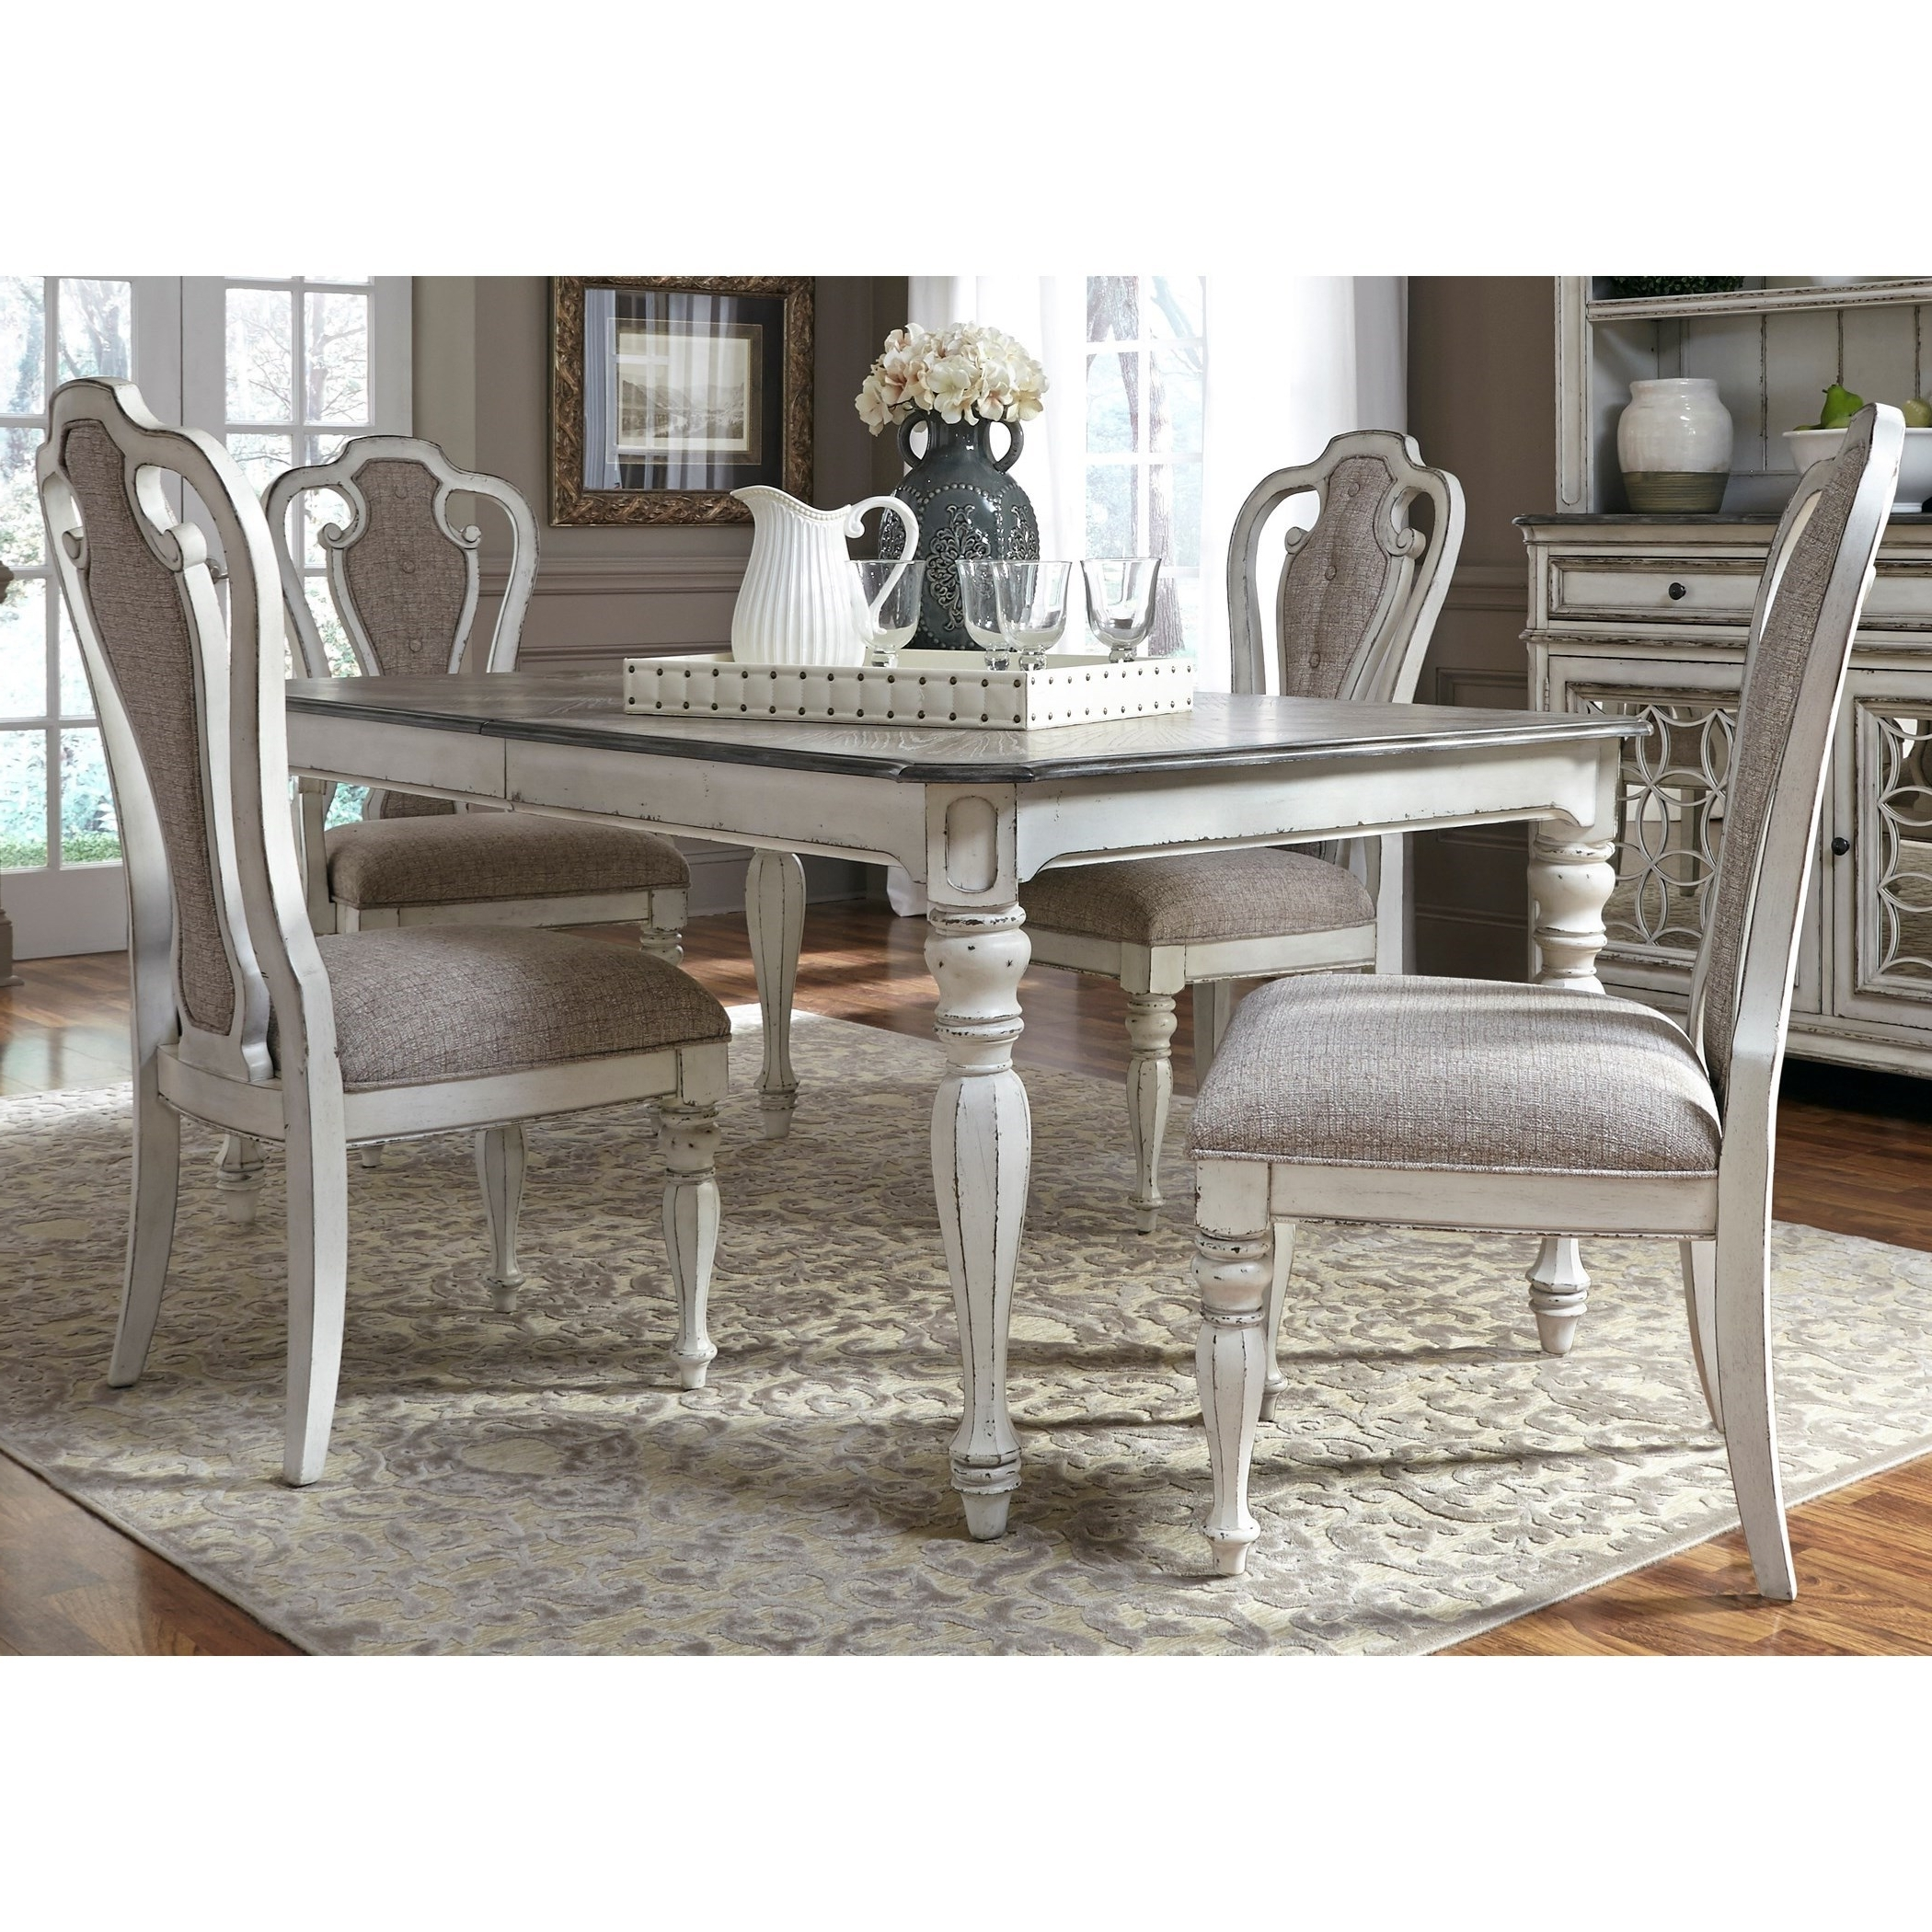 Jaxon 5 Piece Extension Counter Sets With Wood Stools within Latest Liberty Furniture Magnolia Manor Dining 5 Piece Rectangular Table